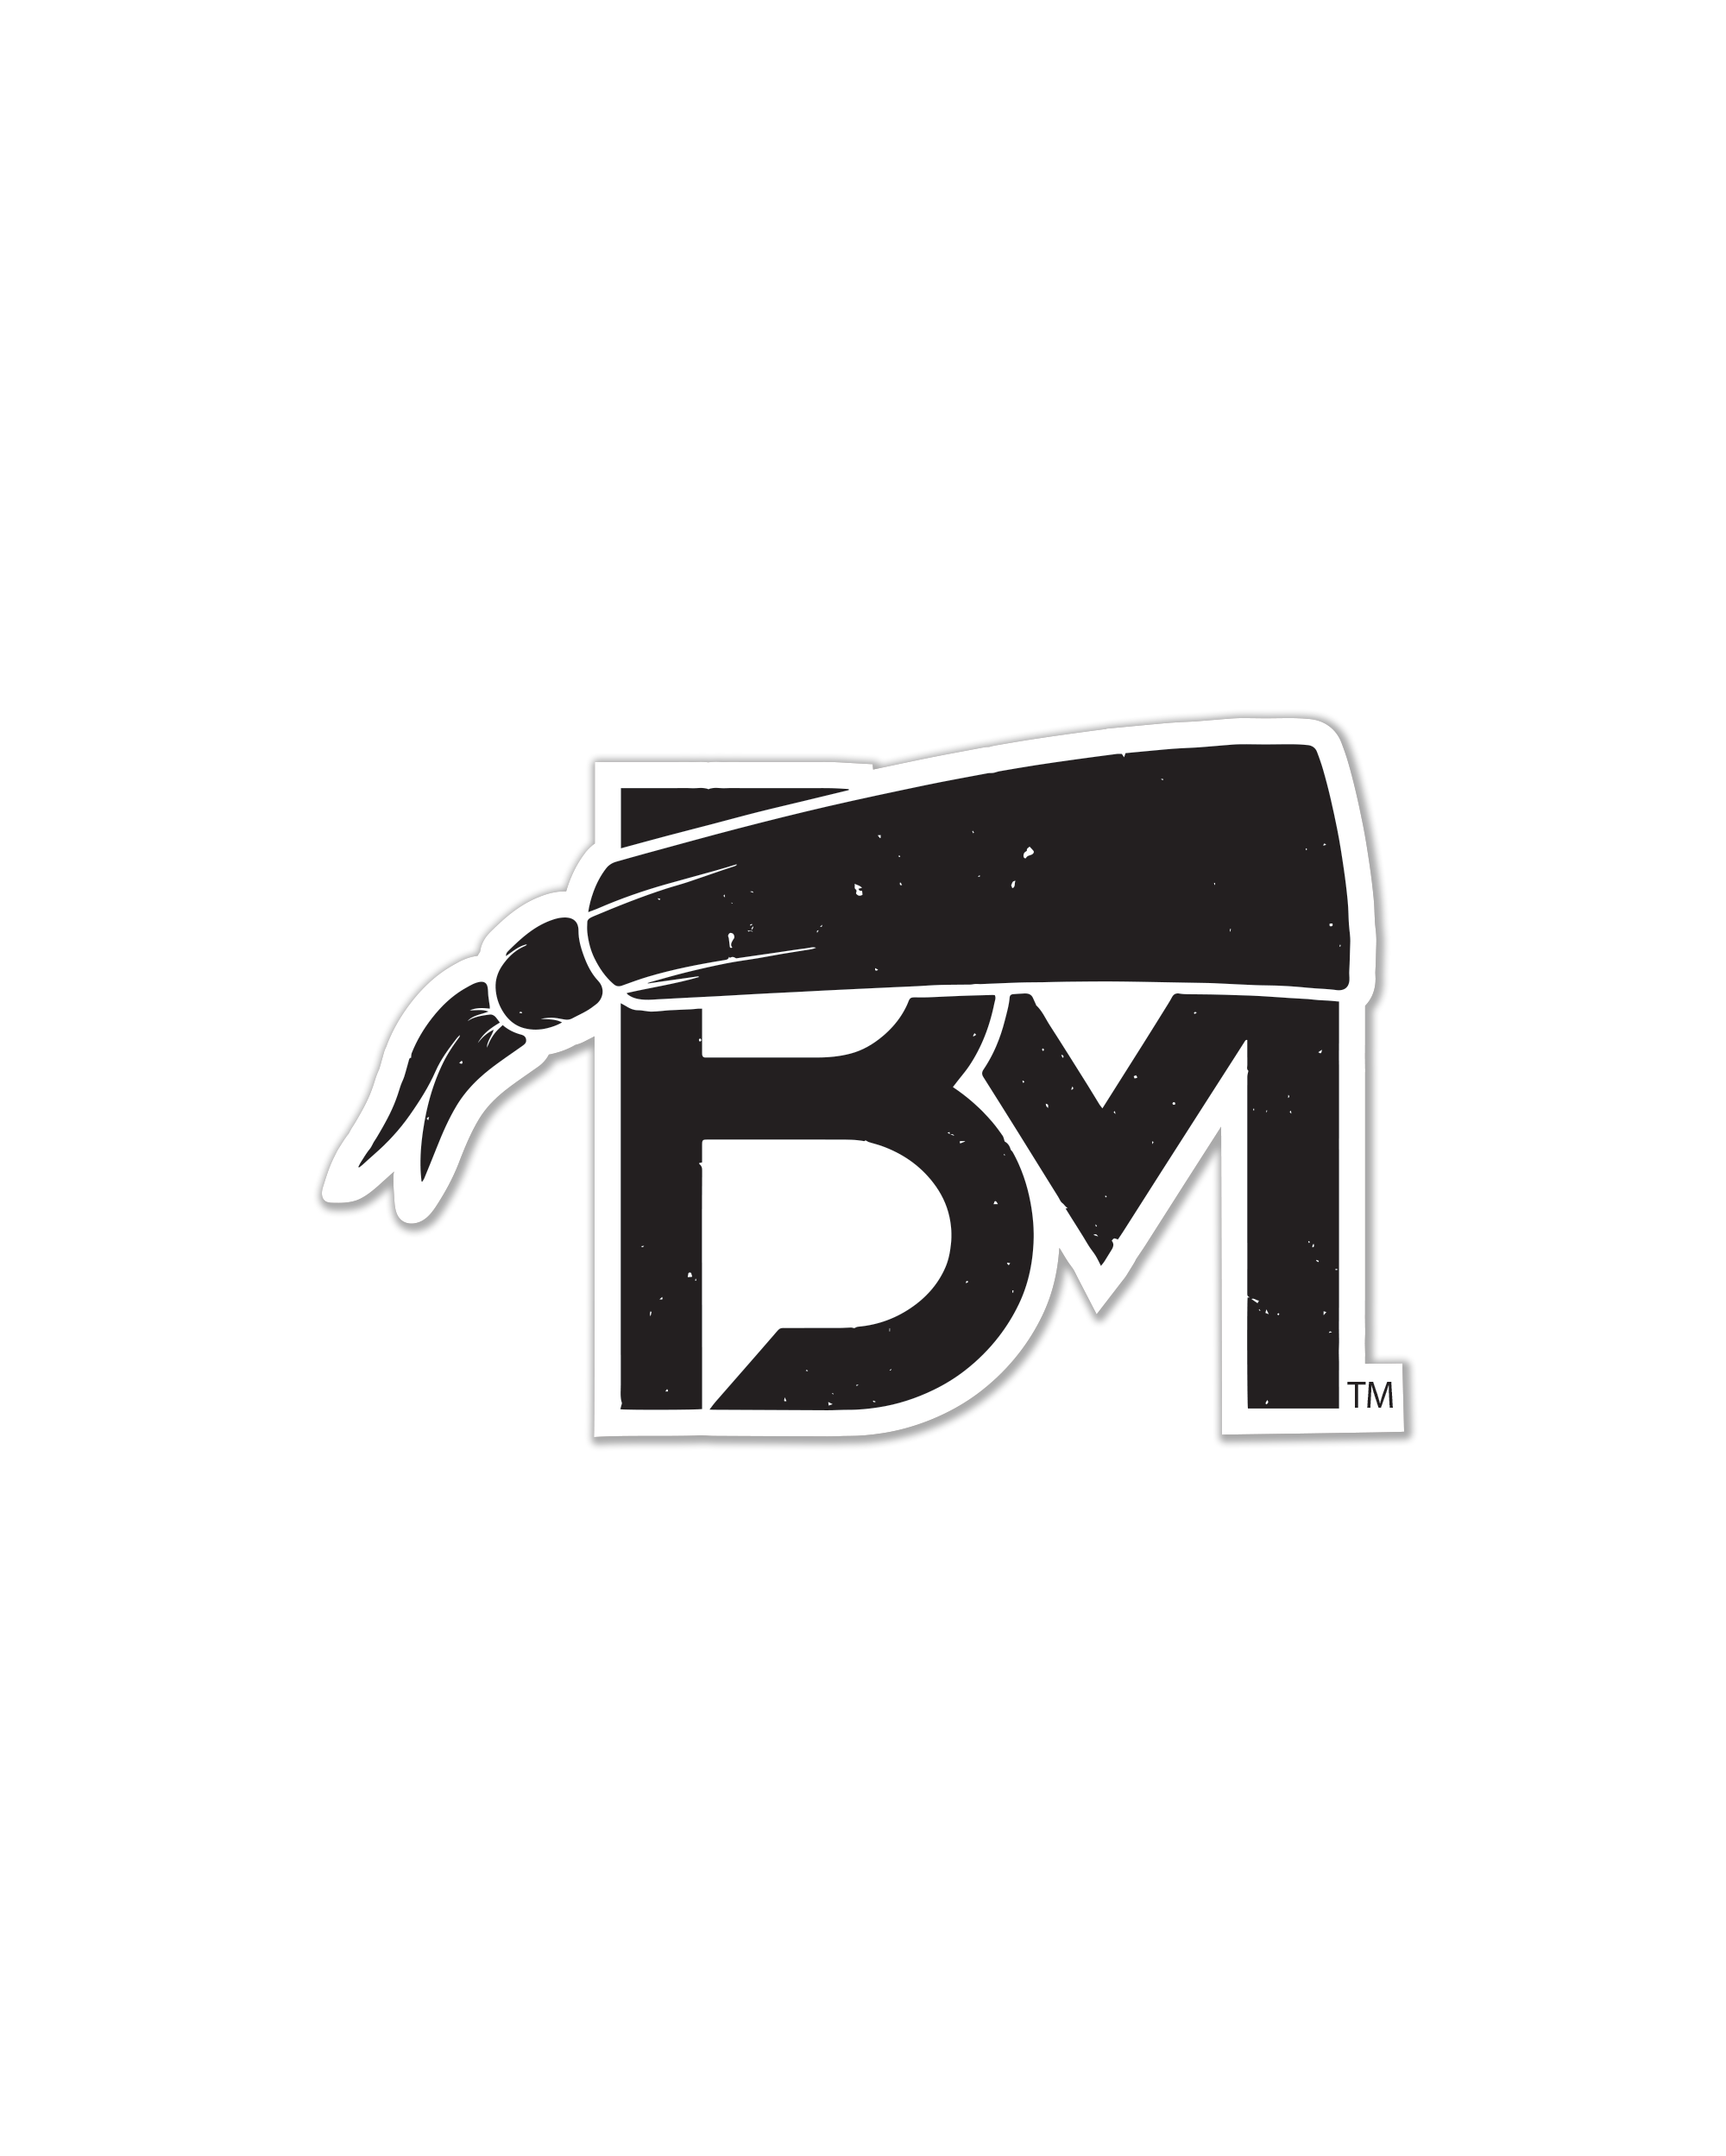 BM Logo Sticker.